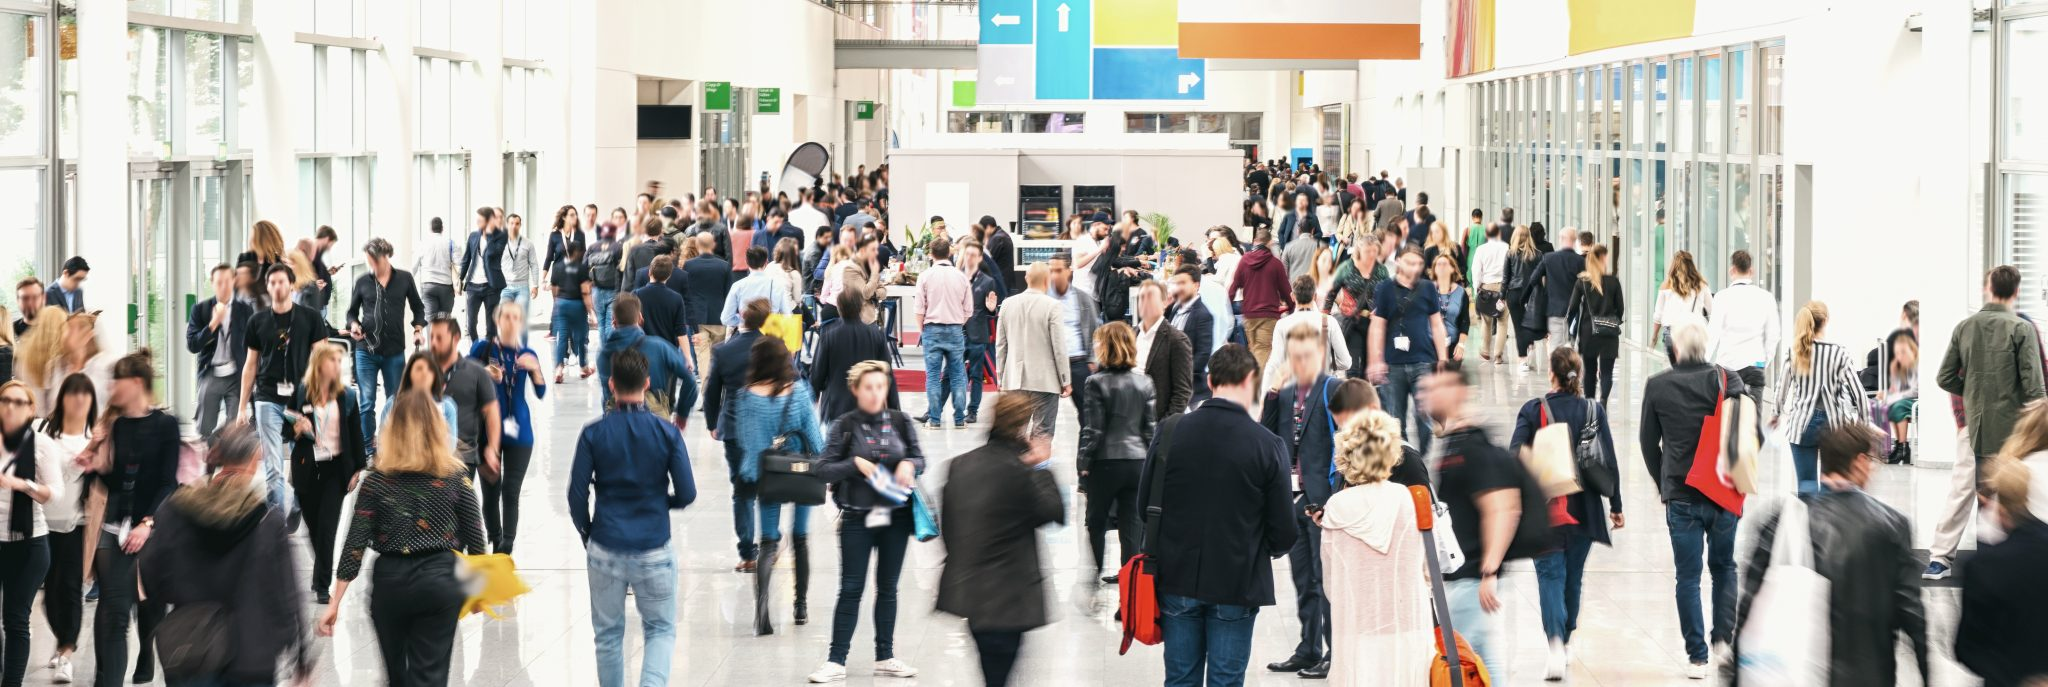 Exhibition hall with many people